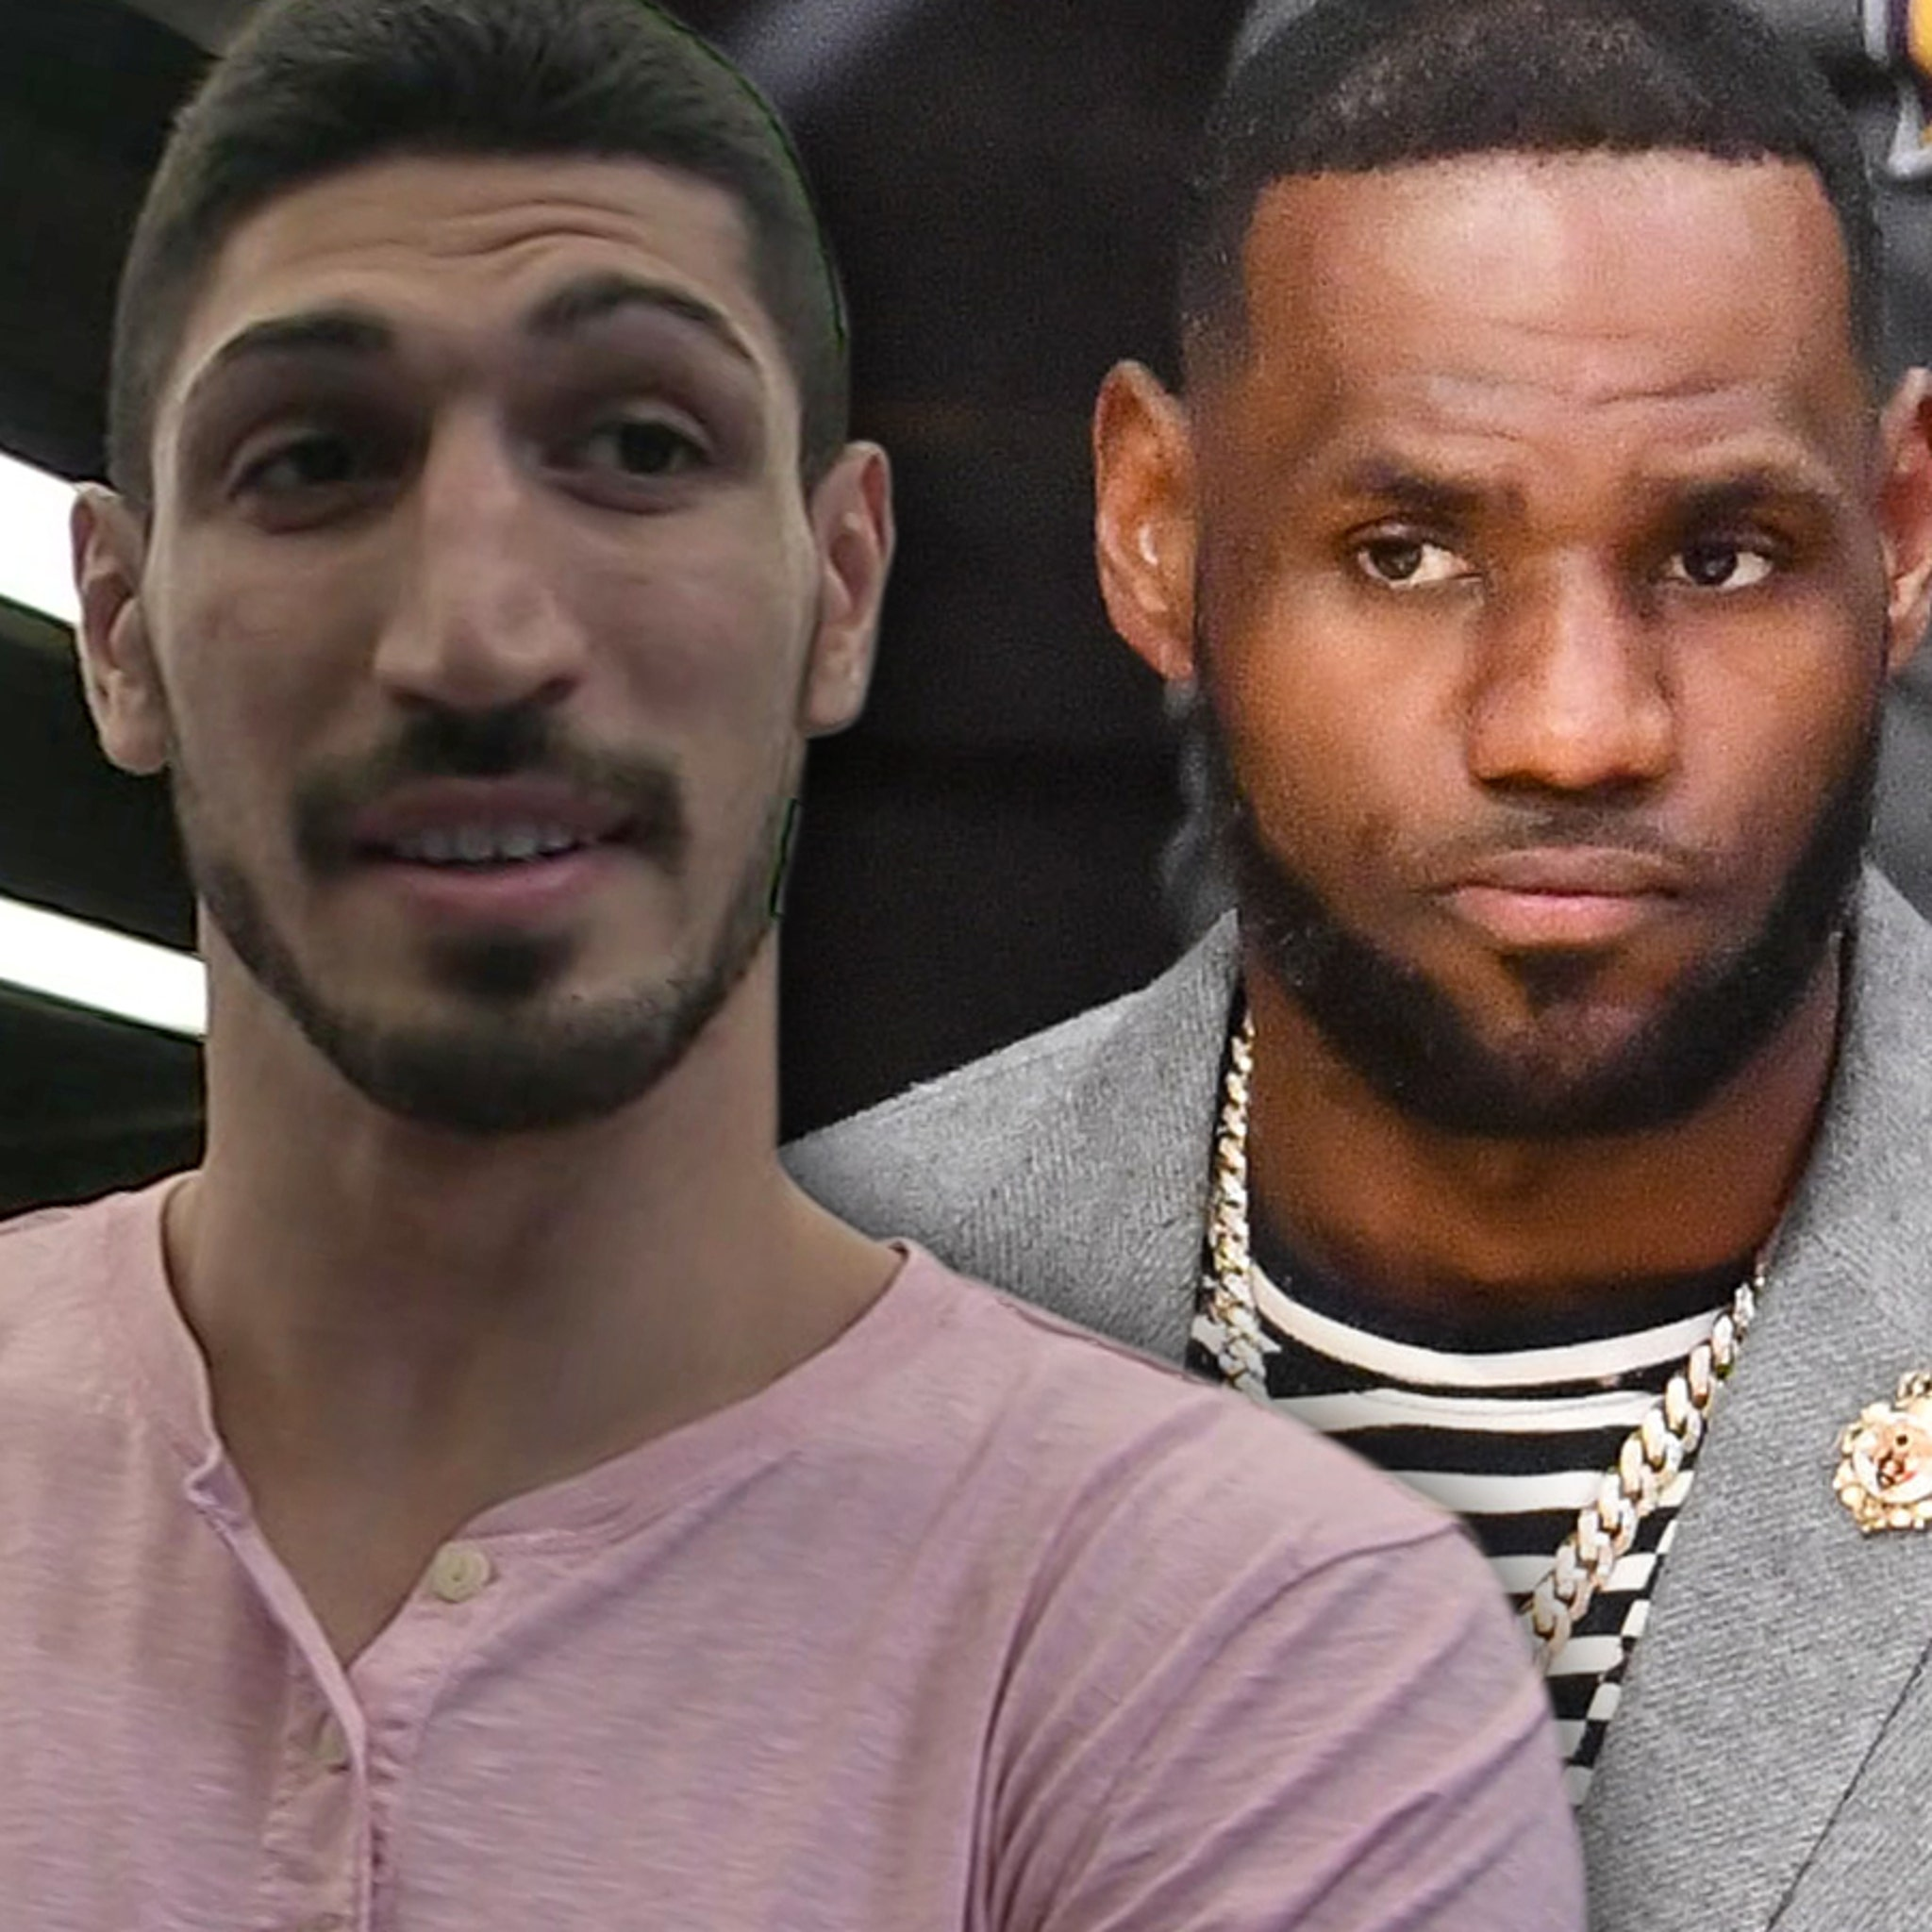 NBA's Enes Kanter Goes After LeBron James Over China Comments